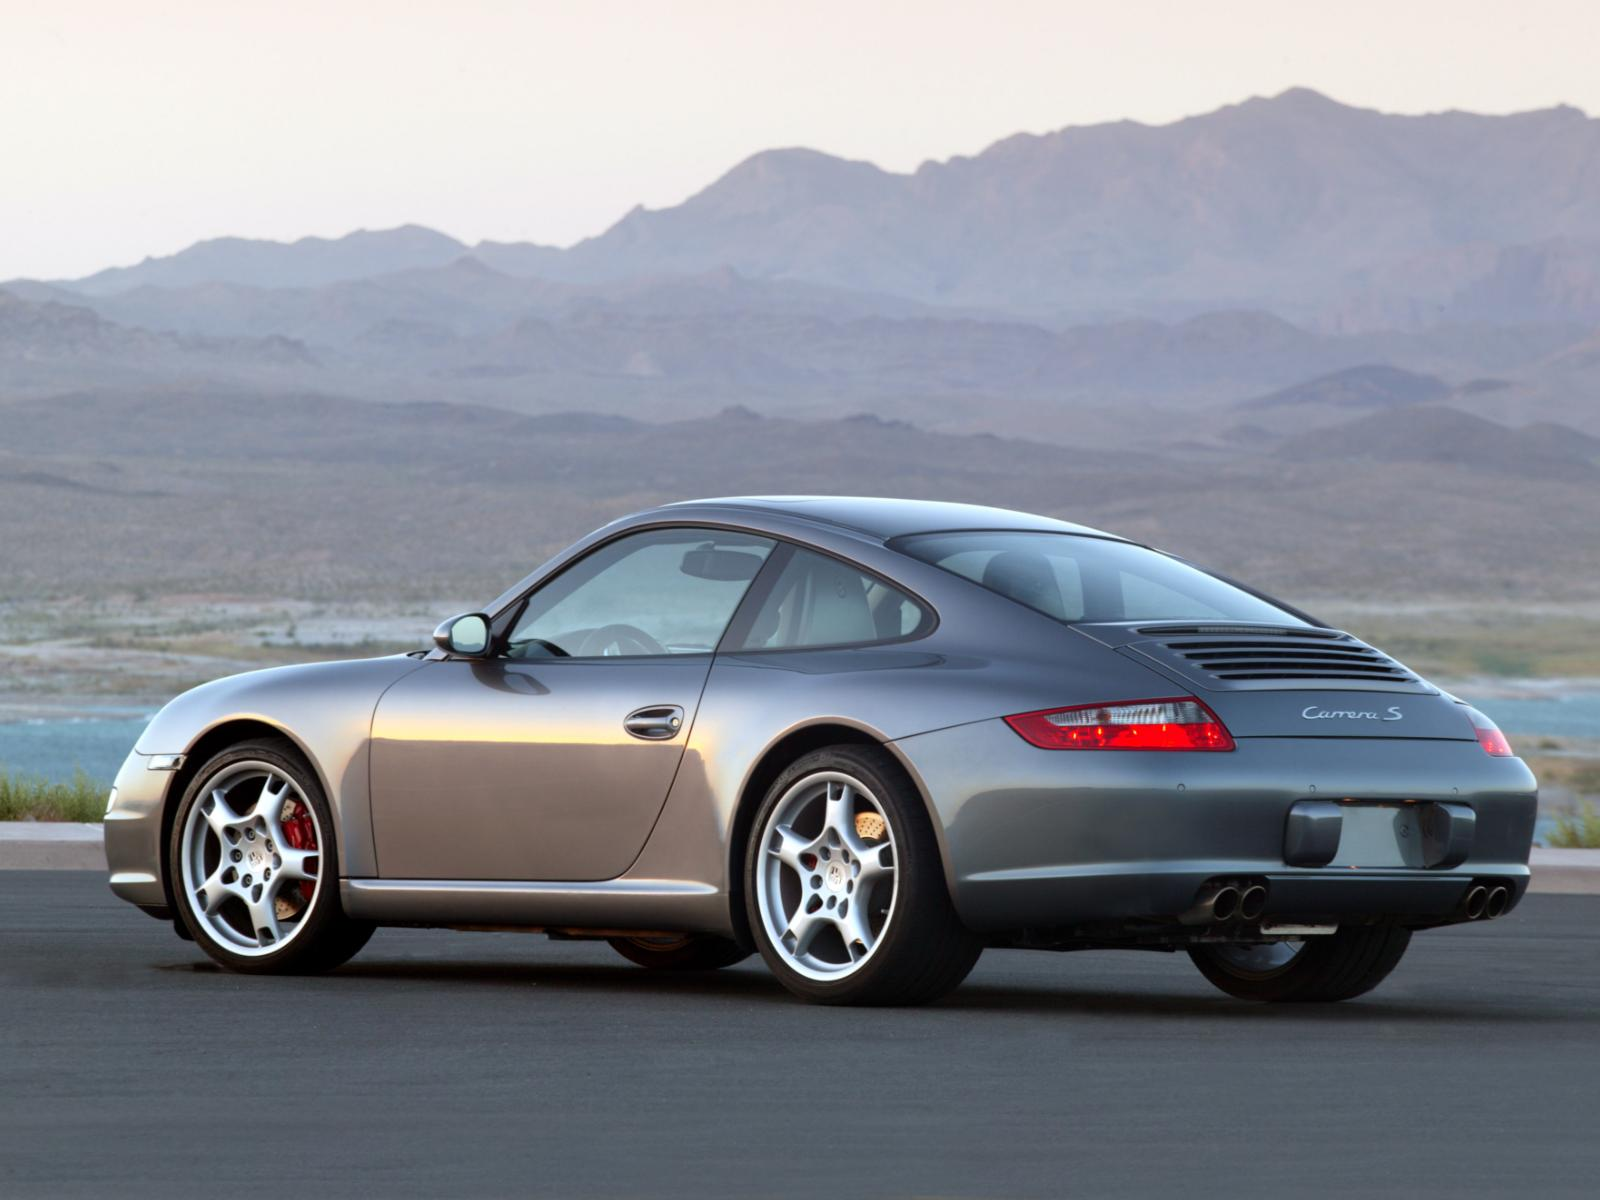 Porsche 997 911 Carrera S photo 15434